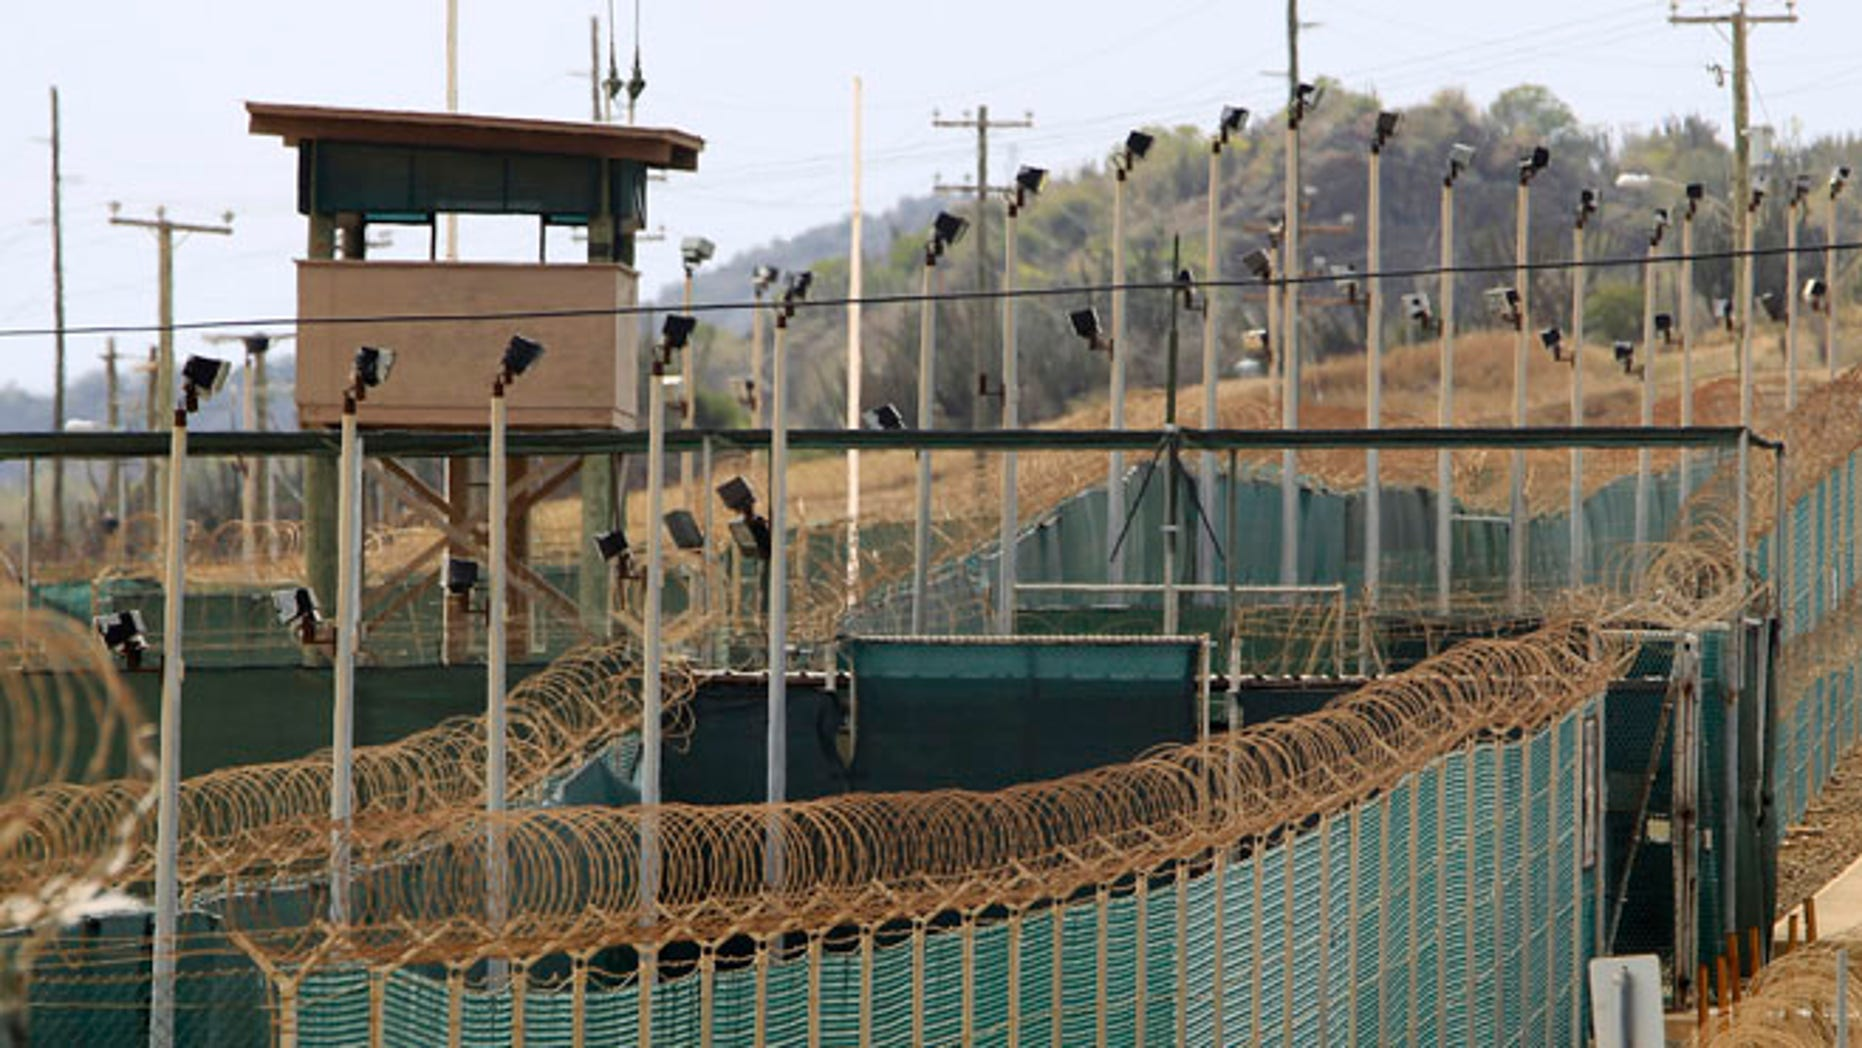 March 6, 2013: The exterior of Camp Delta is seen at the U.S. Naval Base at Guantanamo Bay.